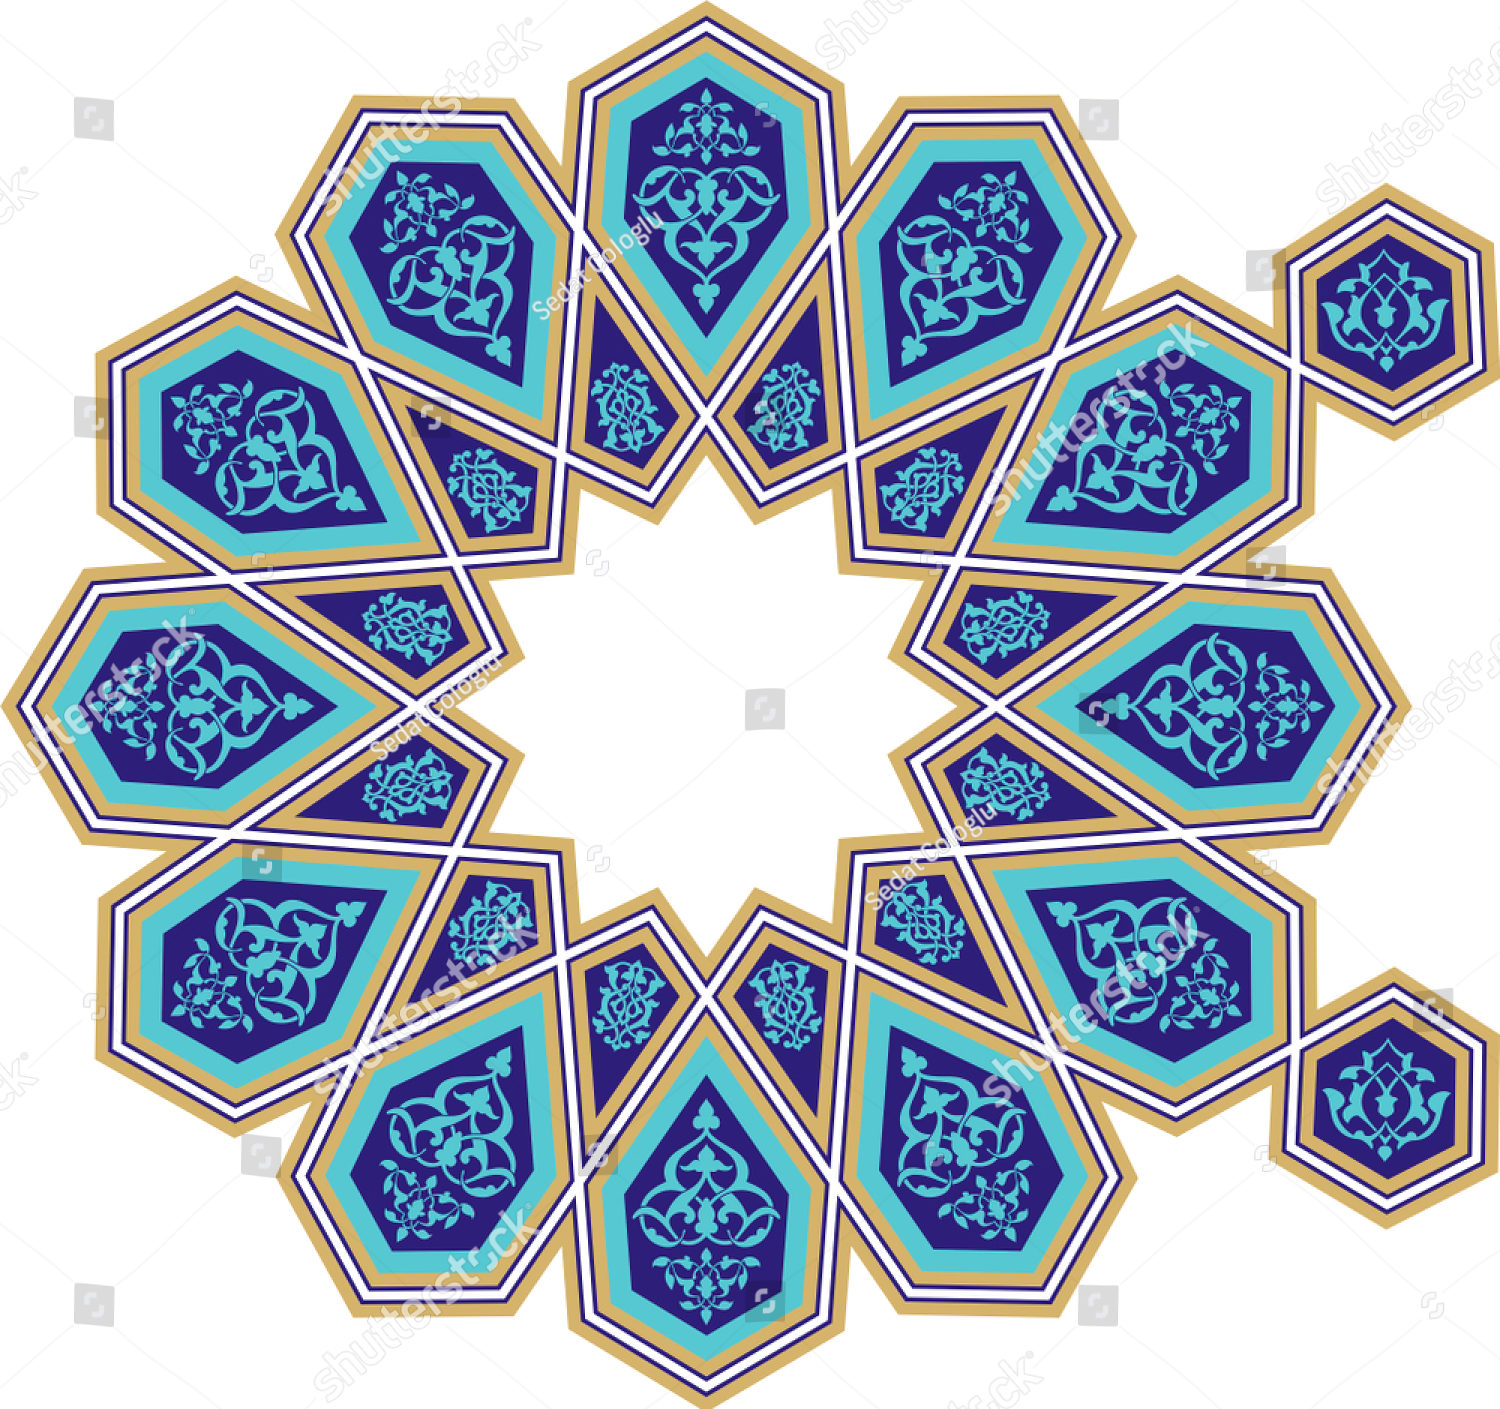 stock-vector-ottoman-tile-tezhip-motifs-are-very-similar-to-each-other-sacred-geometry-star-mandala-vector-1211464060